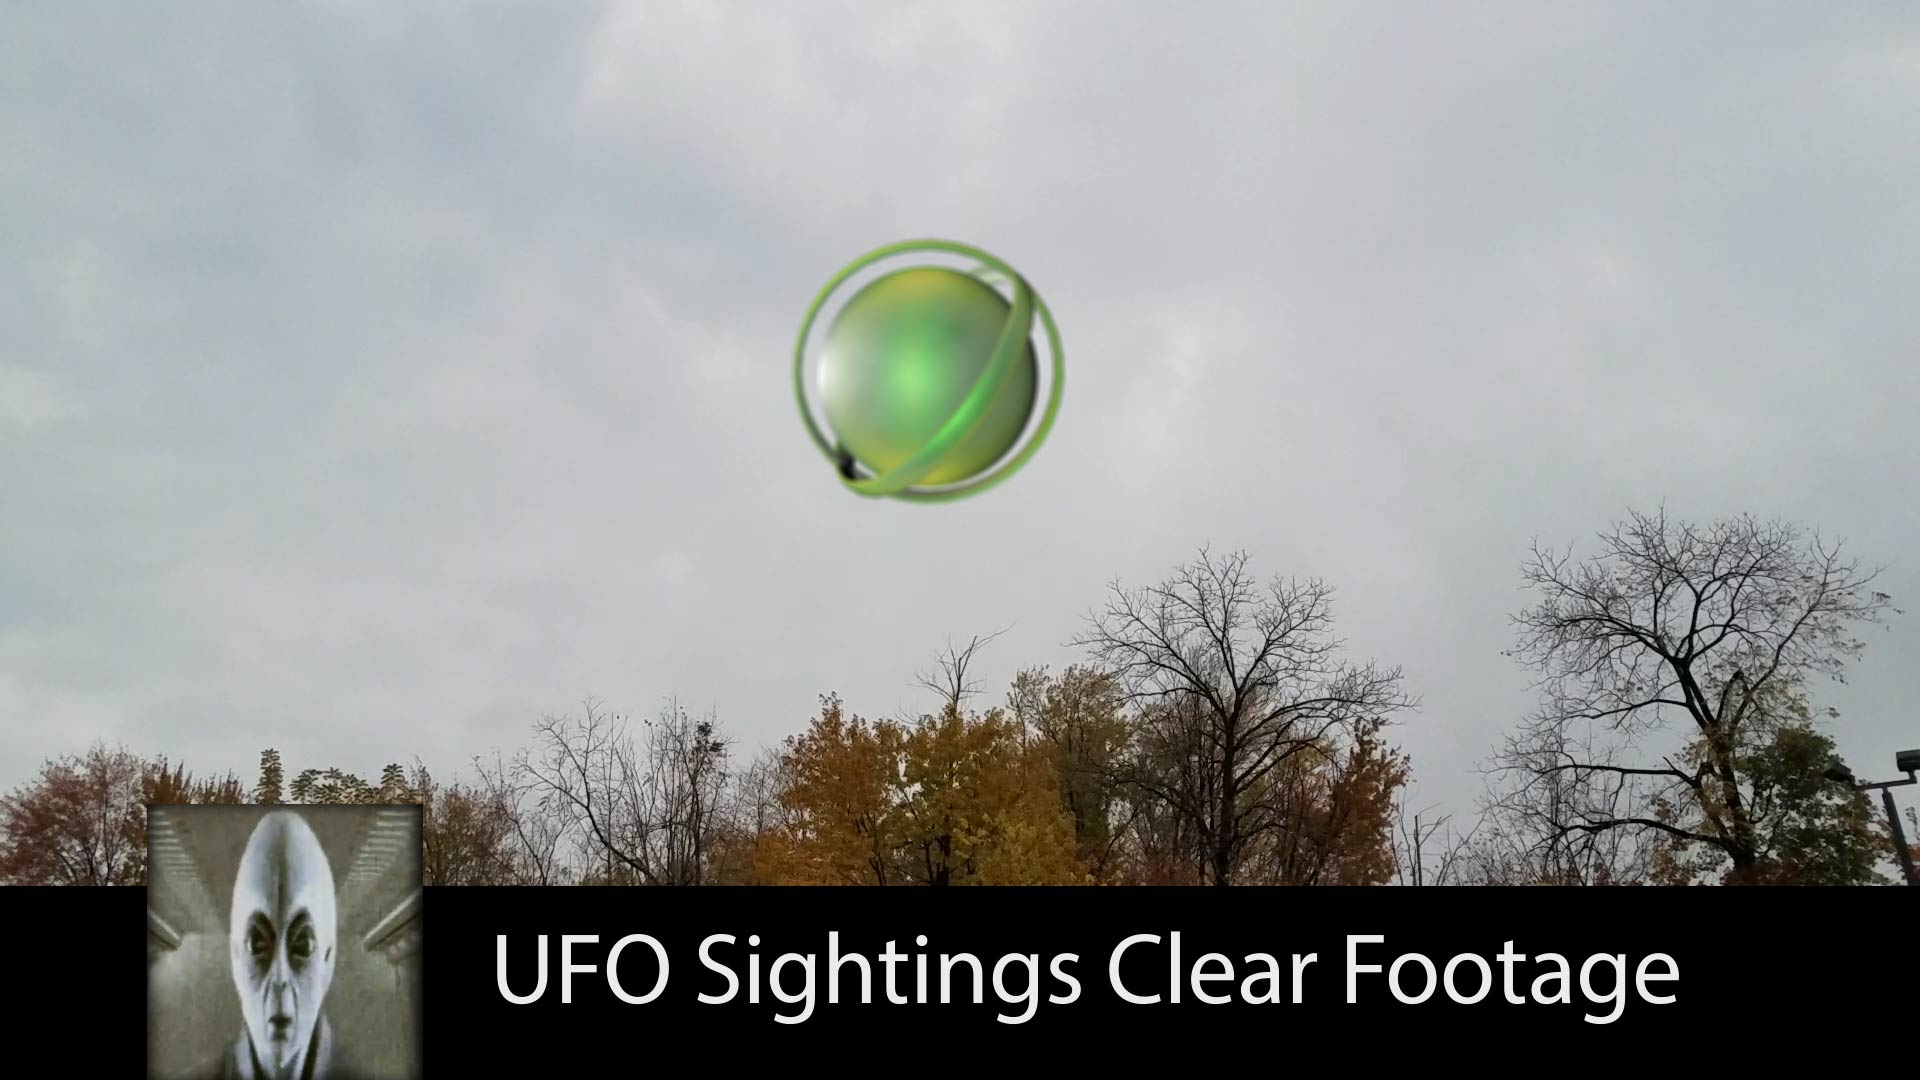 UFO Sightings Clear Footage November 3rd 2017